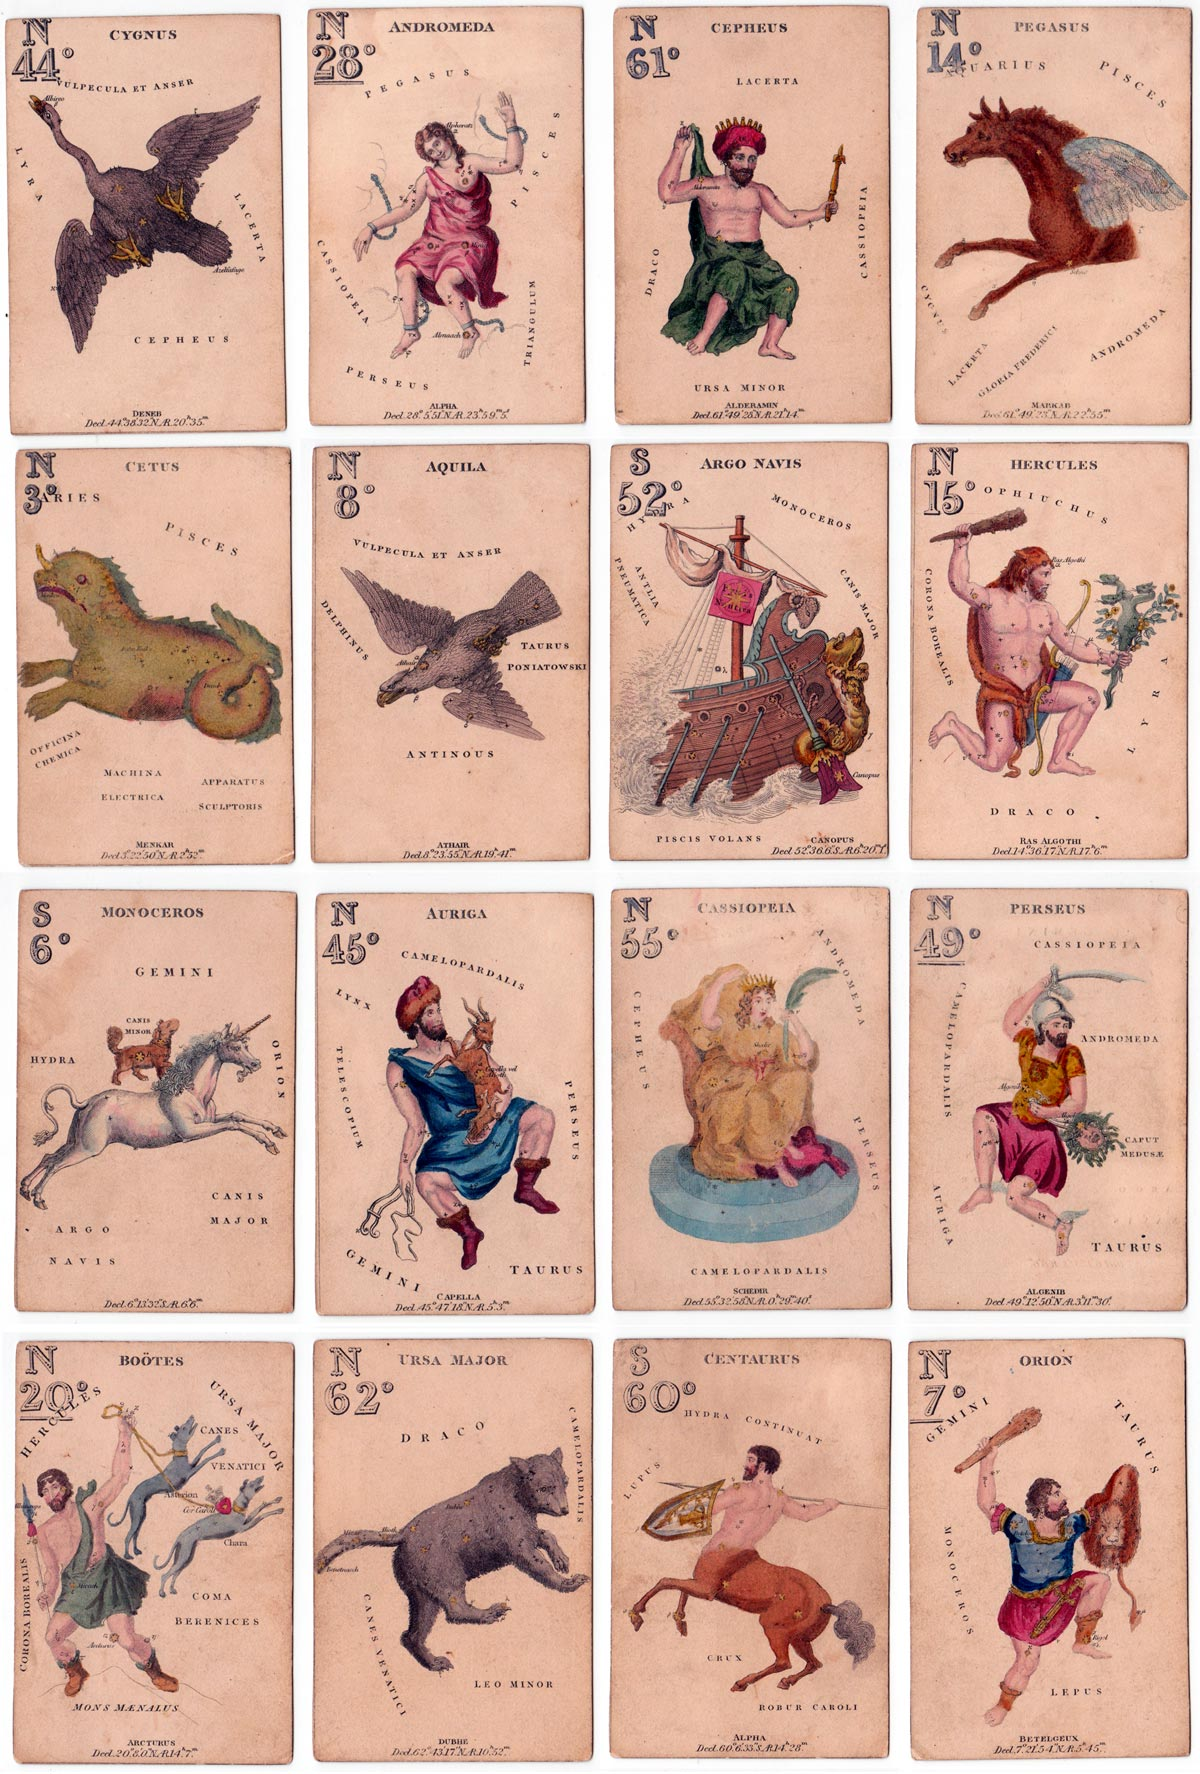 Hodges' astronomy cards carrying diagrams of constellations and their pictorial representations